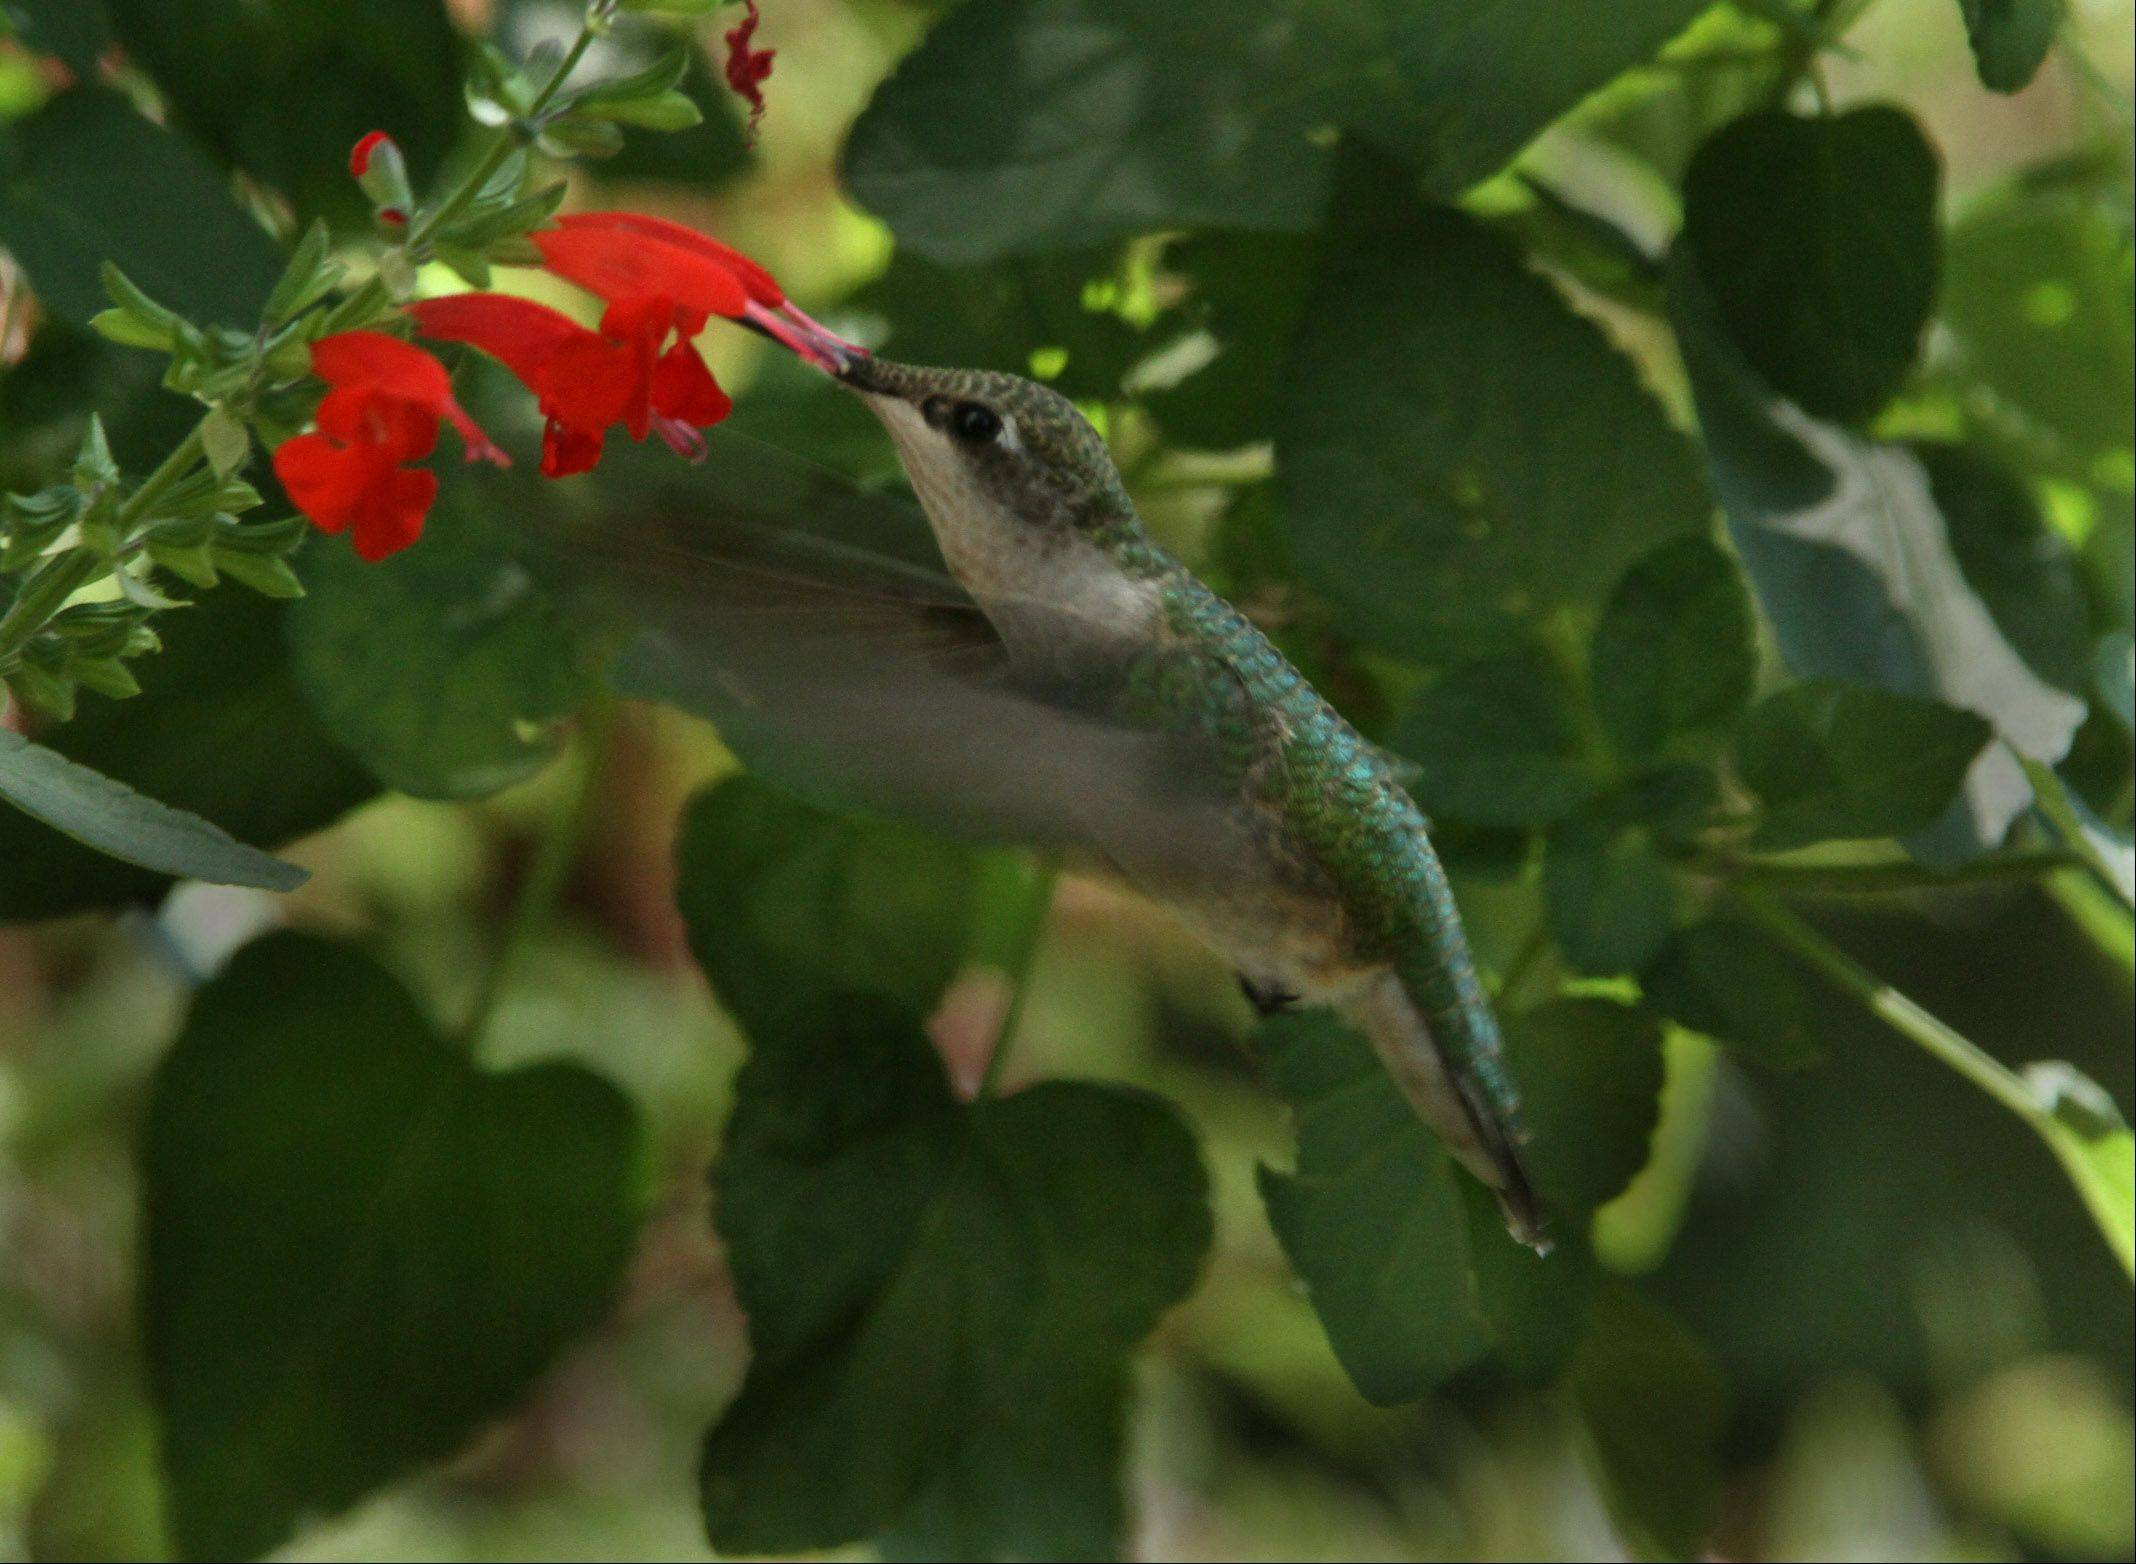 The hummingbird hangs seemingly motionless.